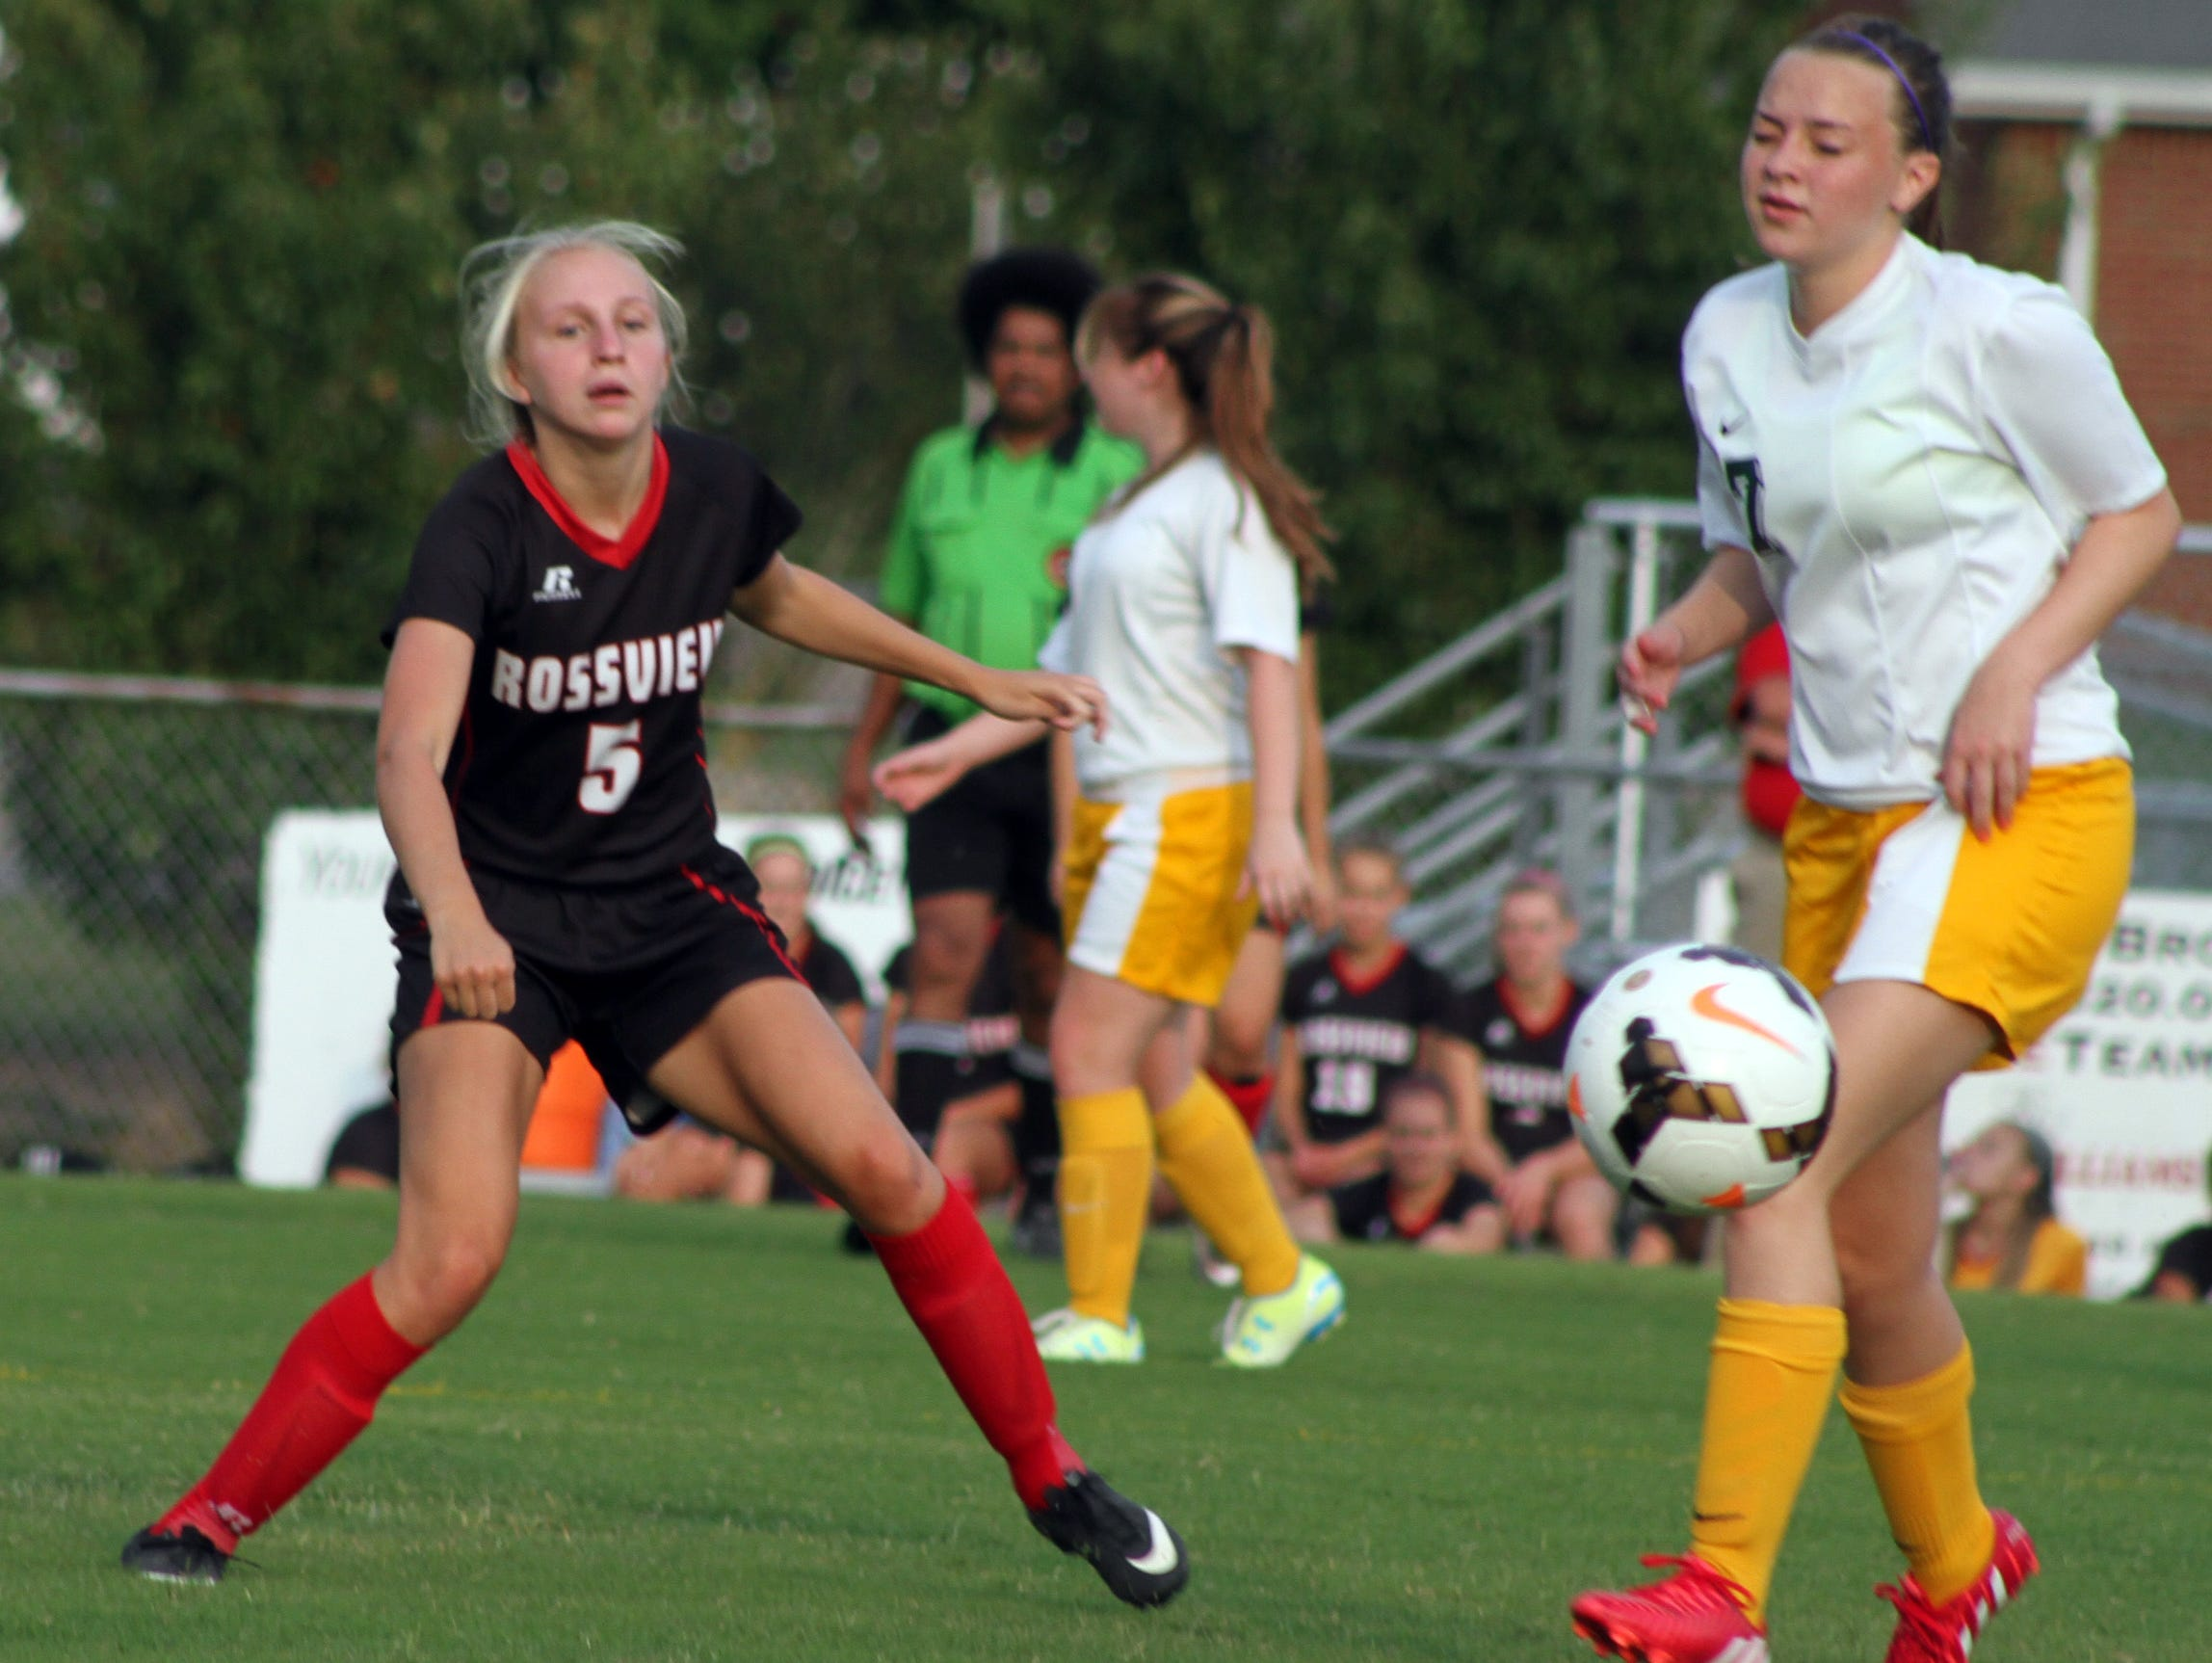 Rossview's Melanie Stevens (5) turned in a strong performance Tuesday, scoring three goals against Northwest and leading the Lady Hawks to a 7-1 victory Tuesday night.